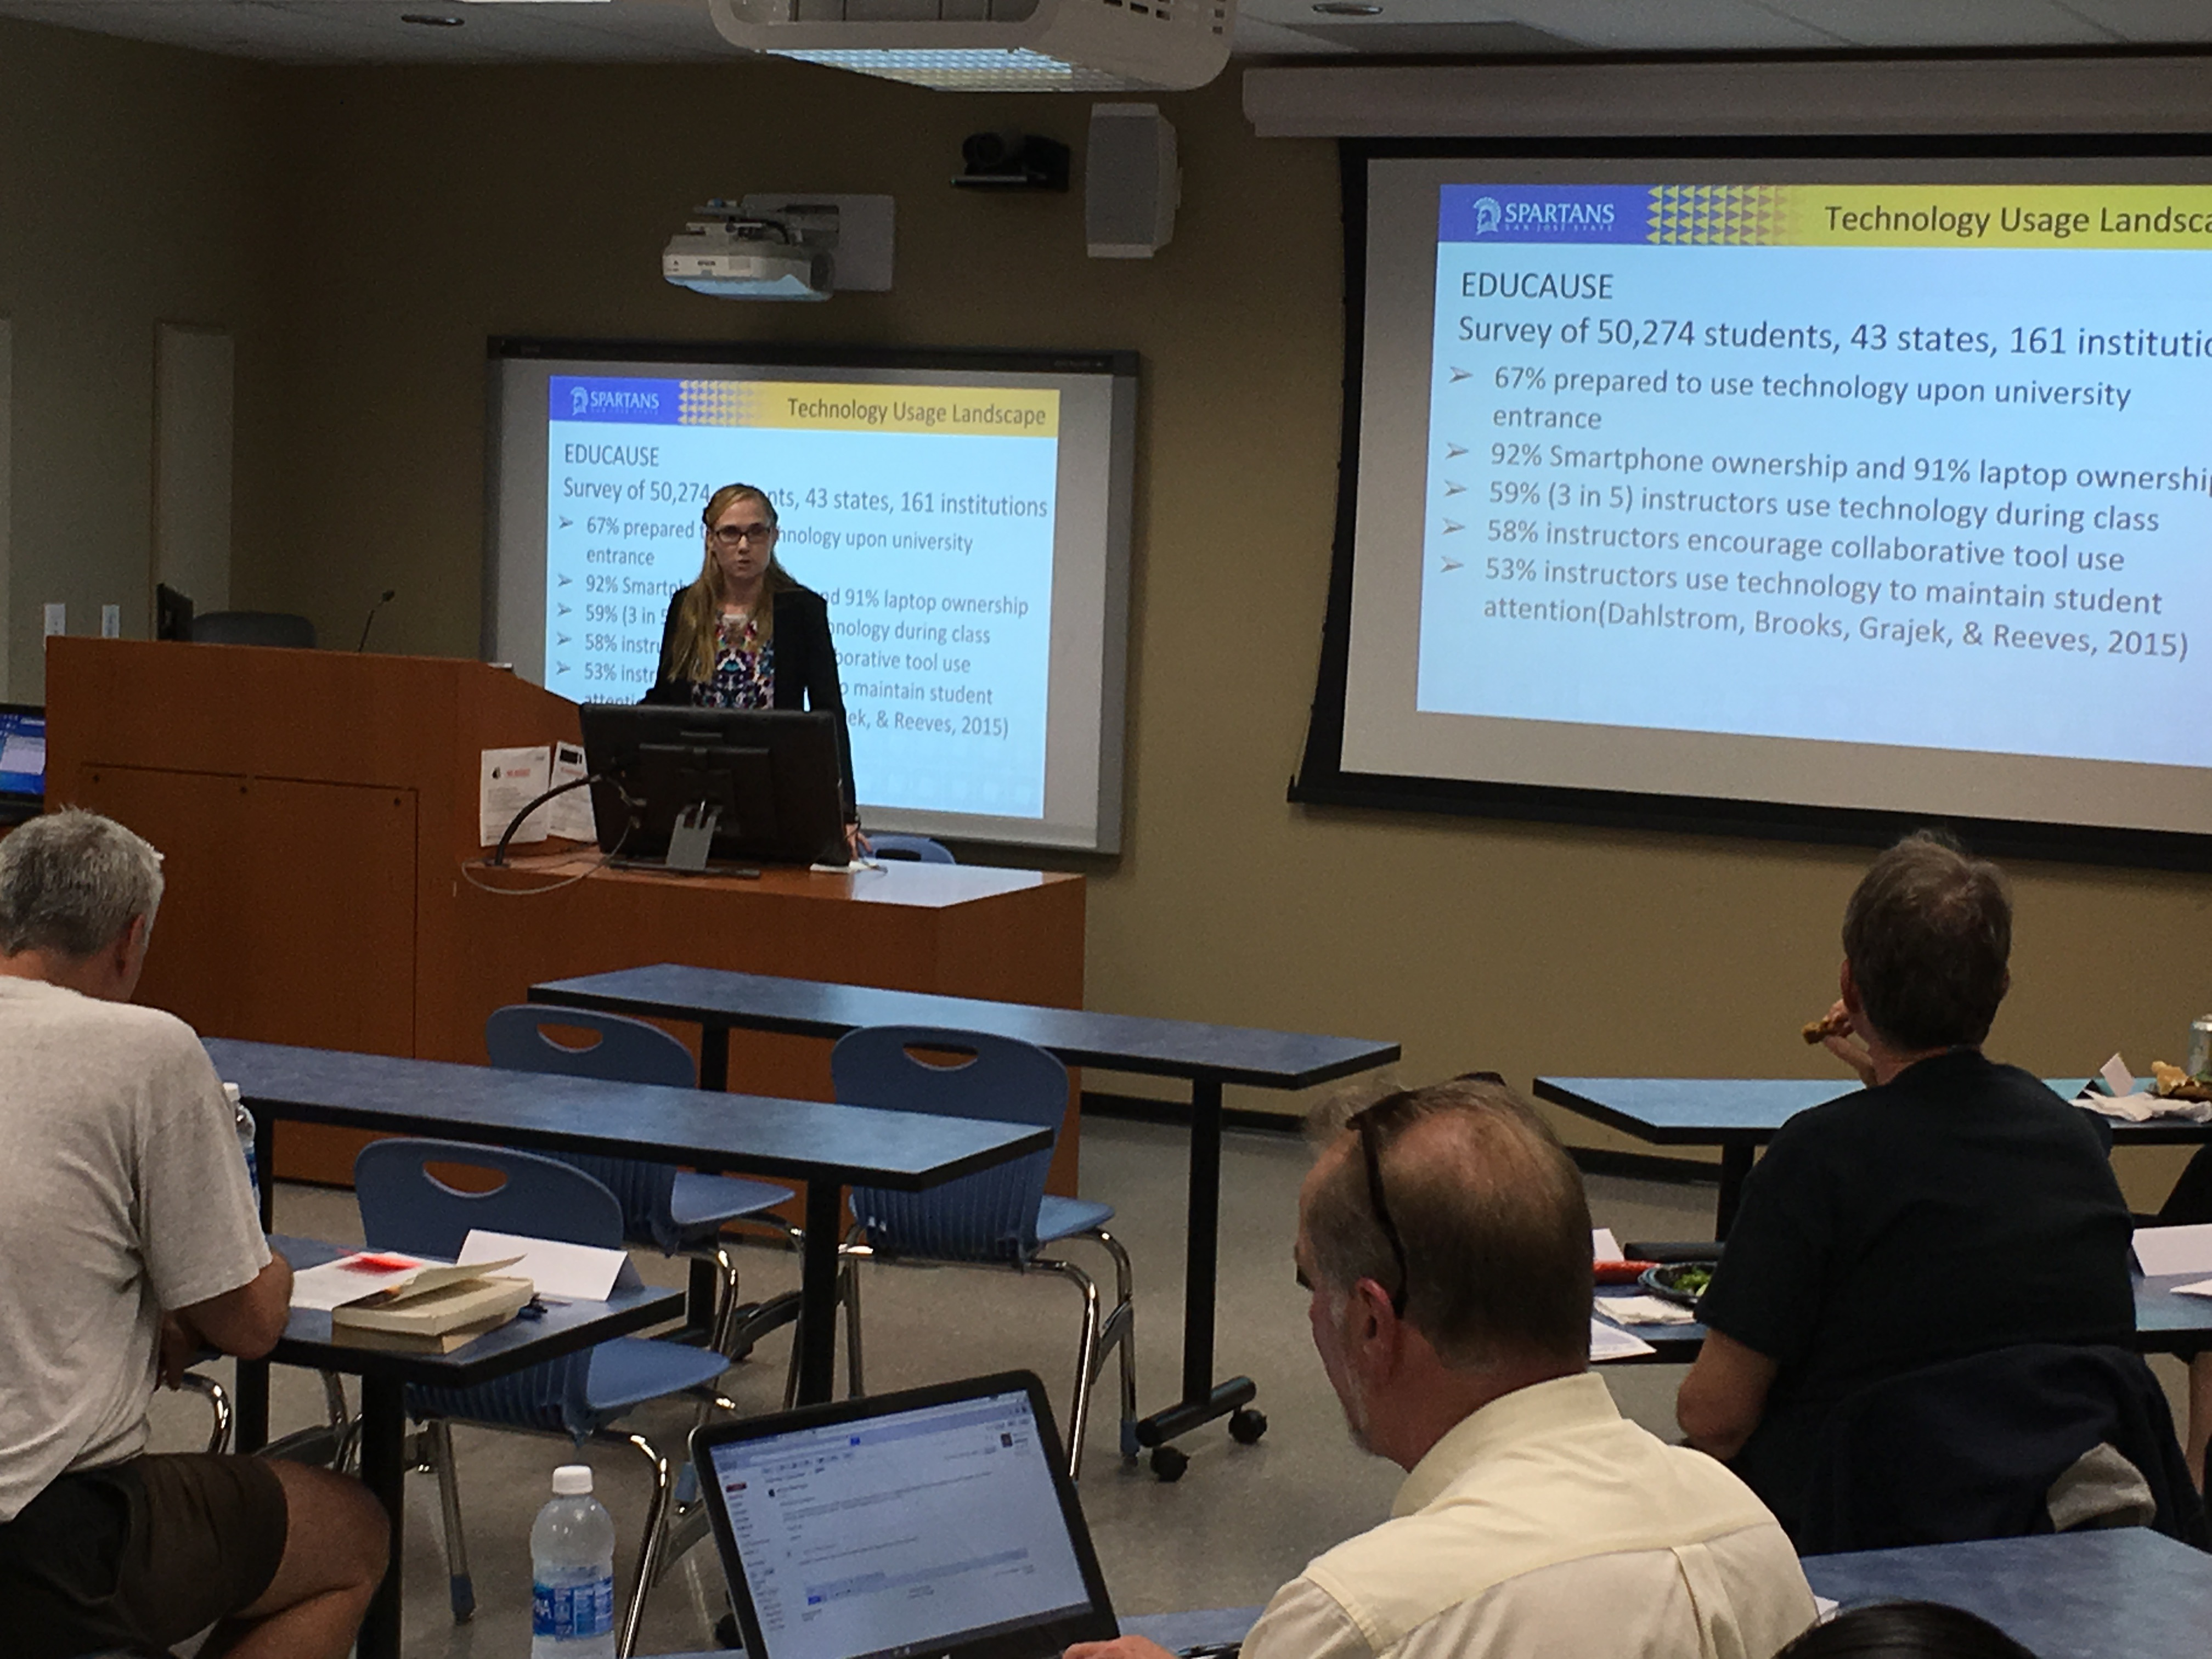 Jennifer Redd presents some statistics to faculty on use of technology in classrooms.